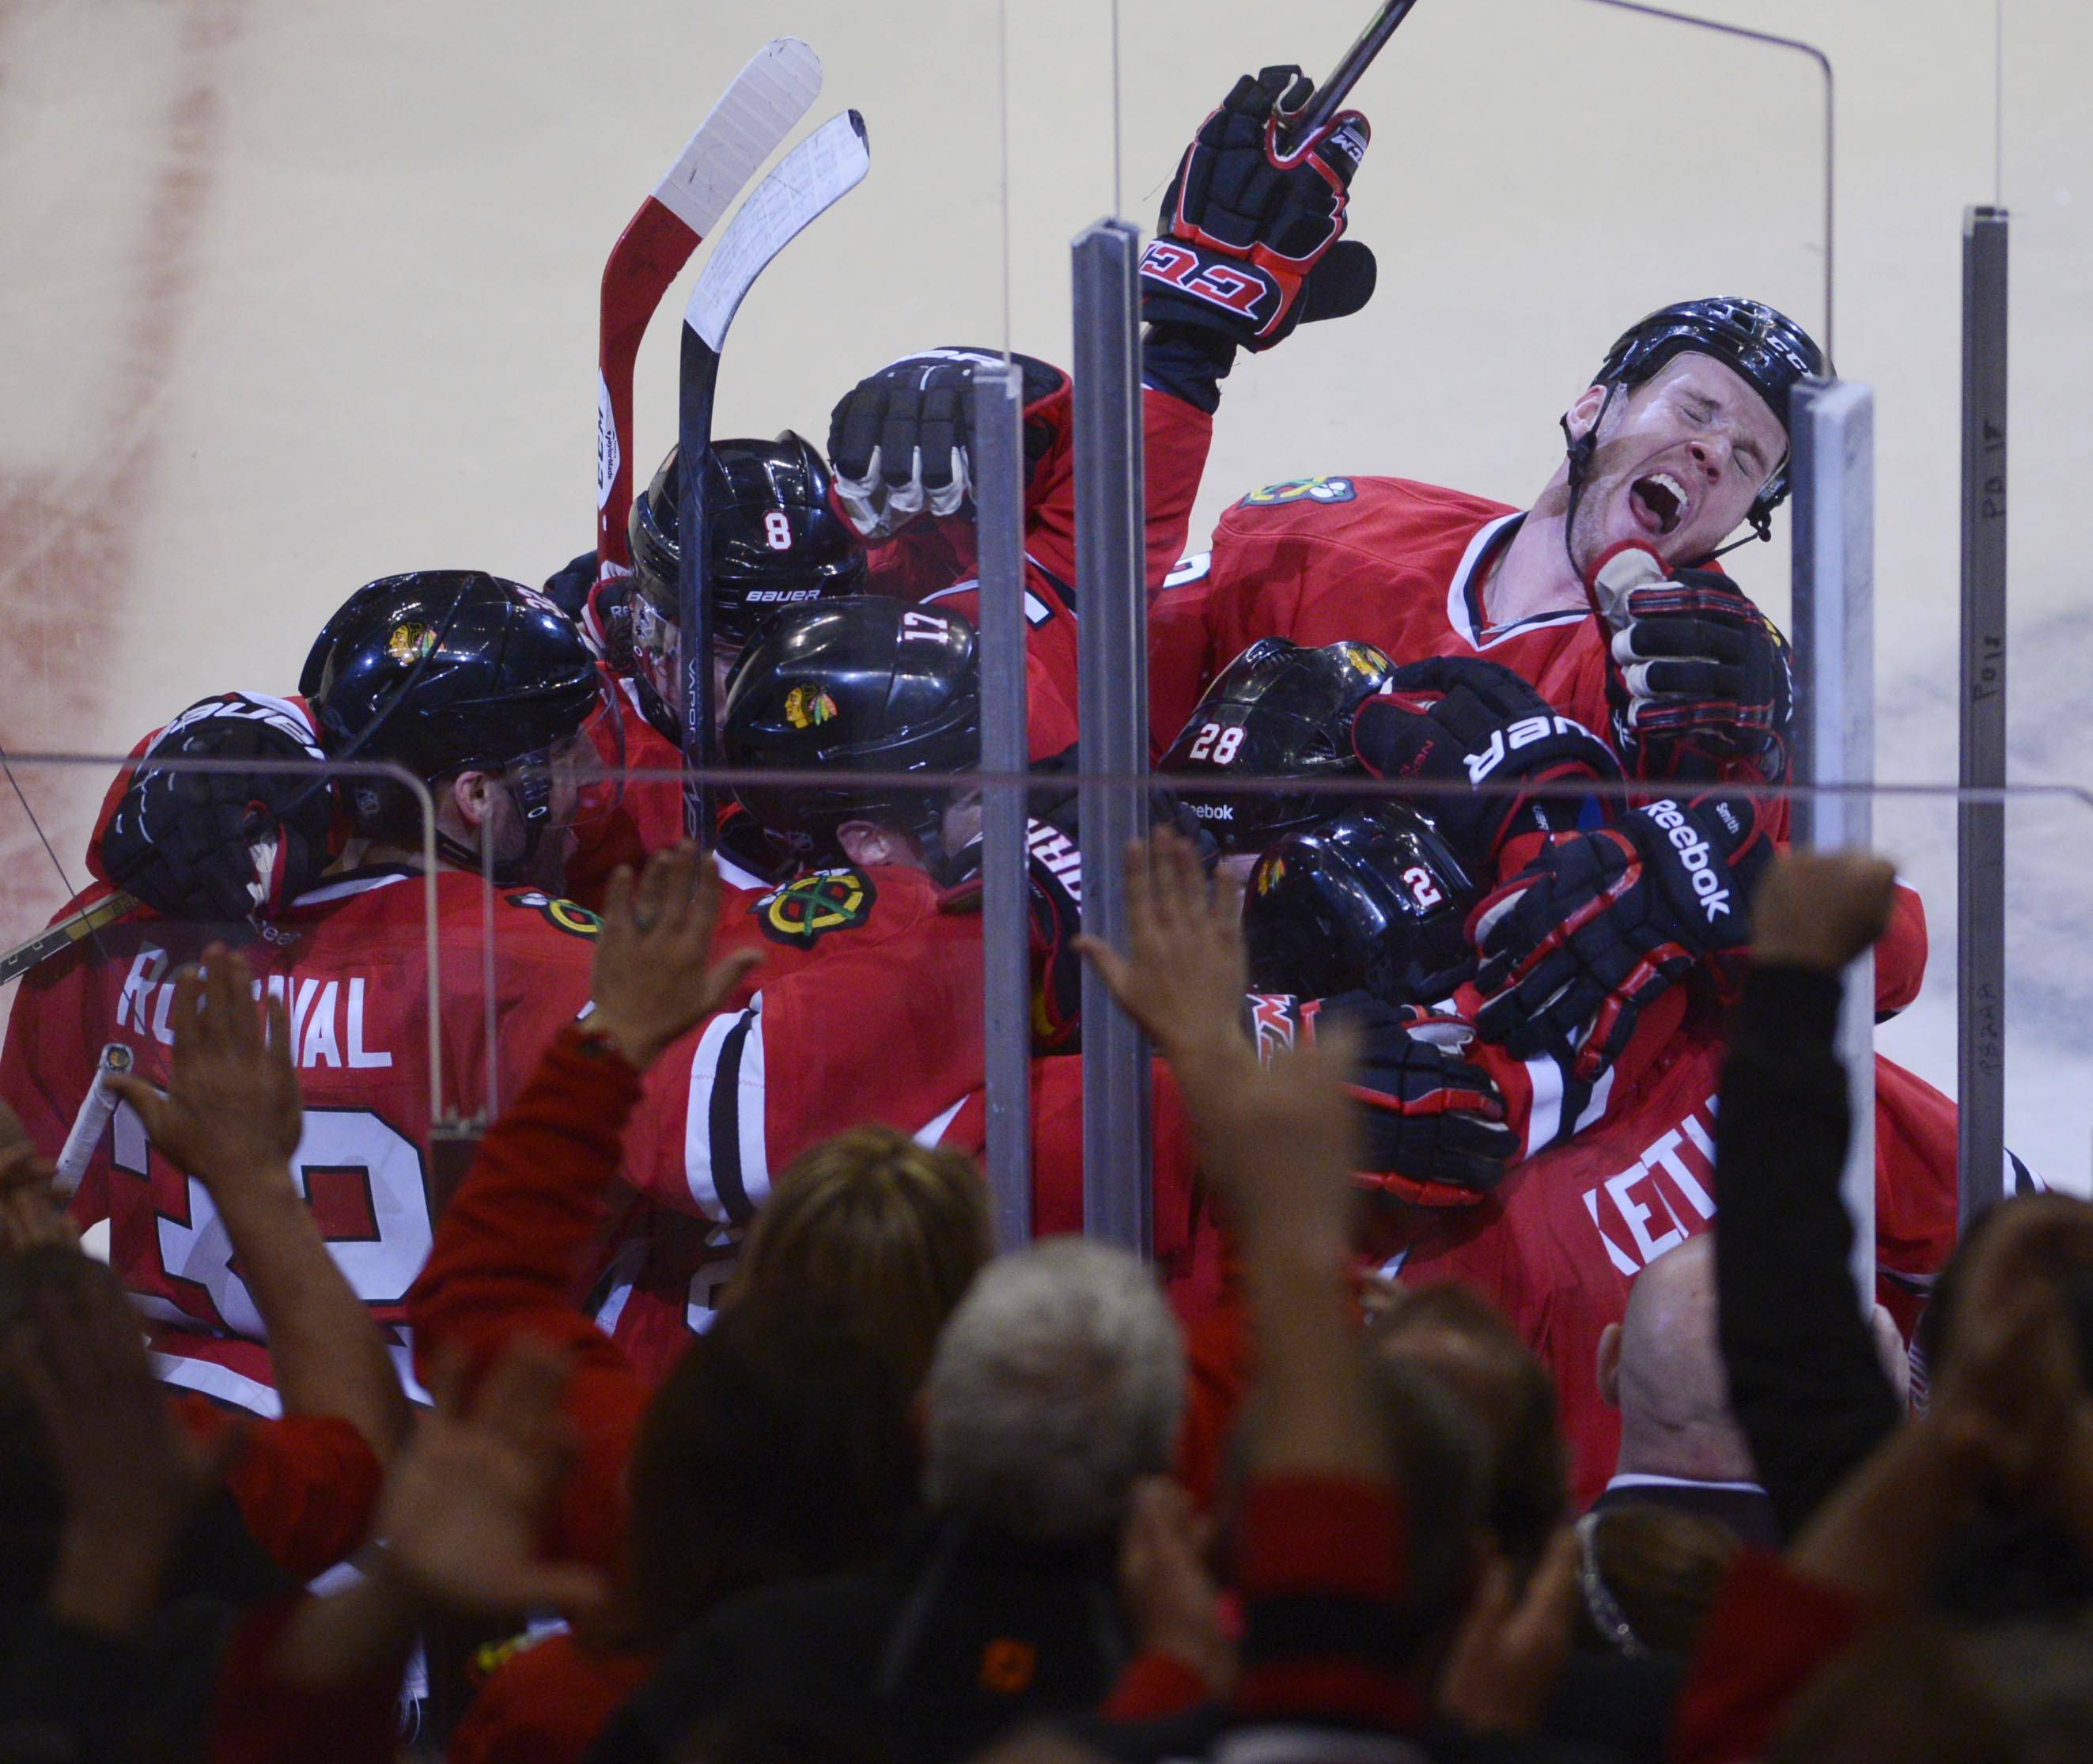 The Blackhawks celebrate Patrick Kane's overtime goal in overtime that evened the series against the St. Louis Blues Wednesday in Game 4 at the United Center in Chicago.